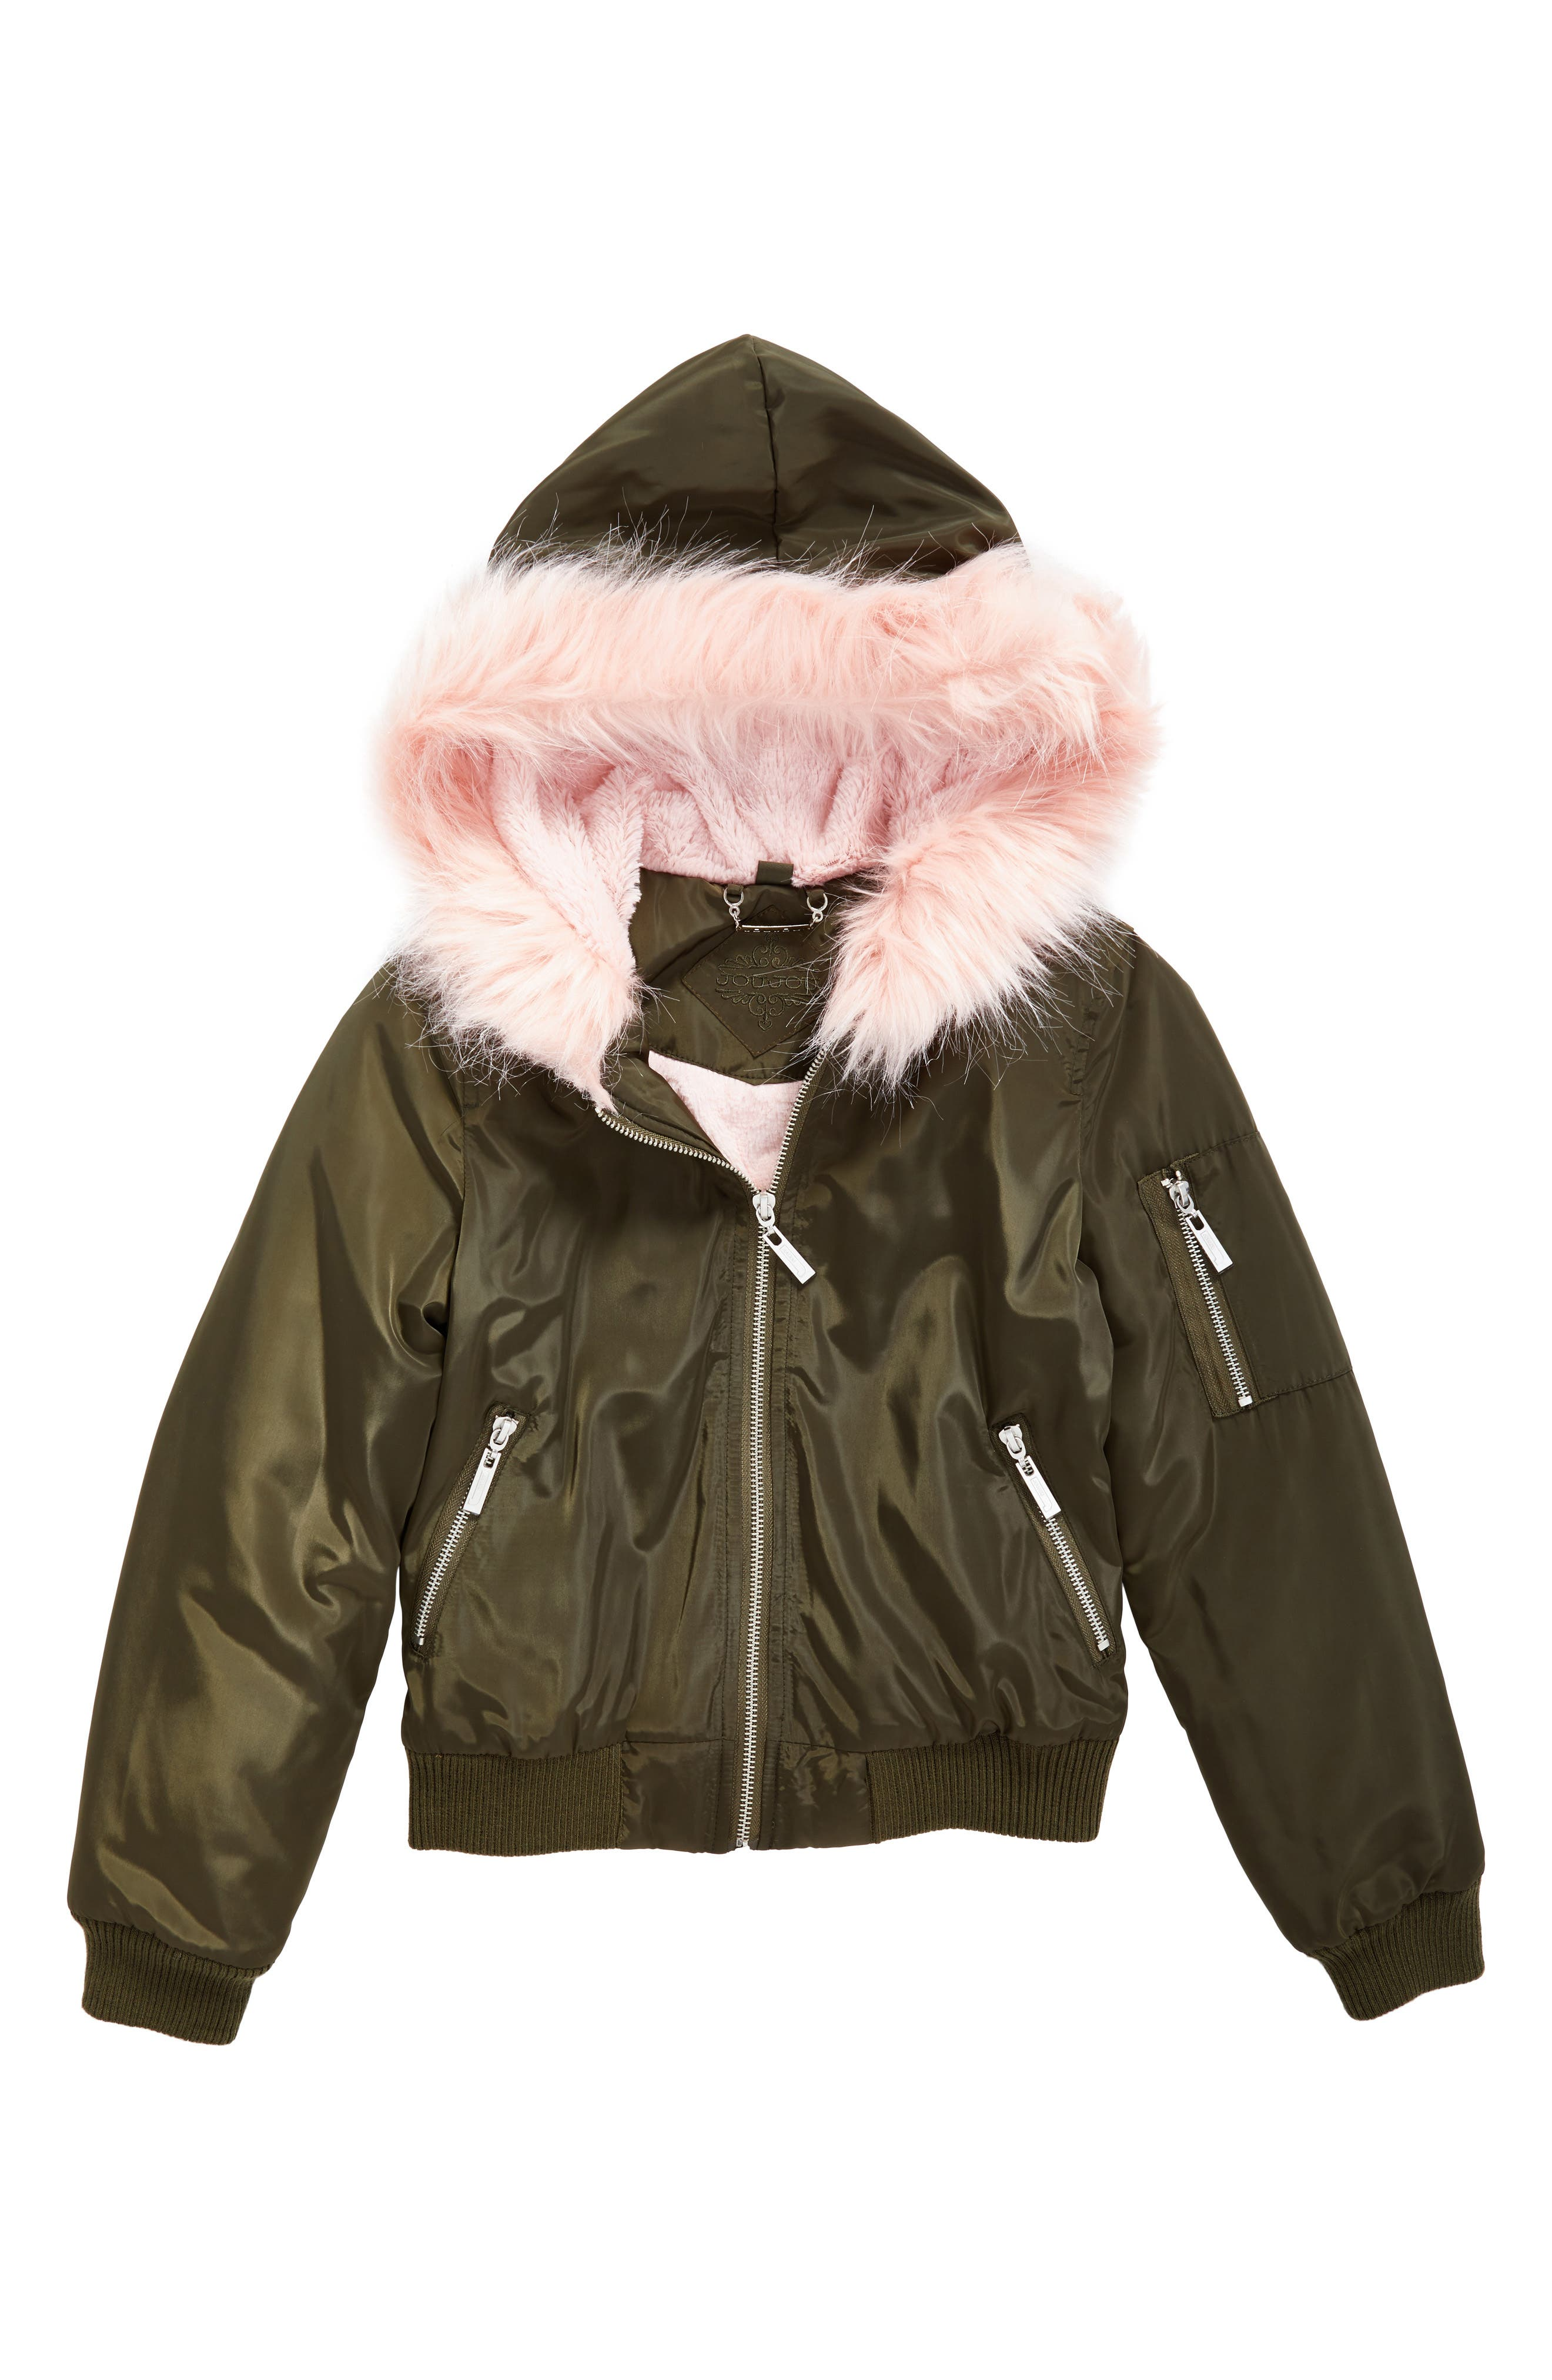 Hooded Bomber Jacket with Faux Fur Trim,                         Main,                         color, Olive/ Pink